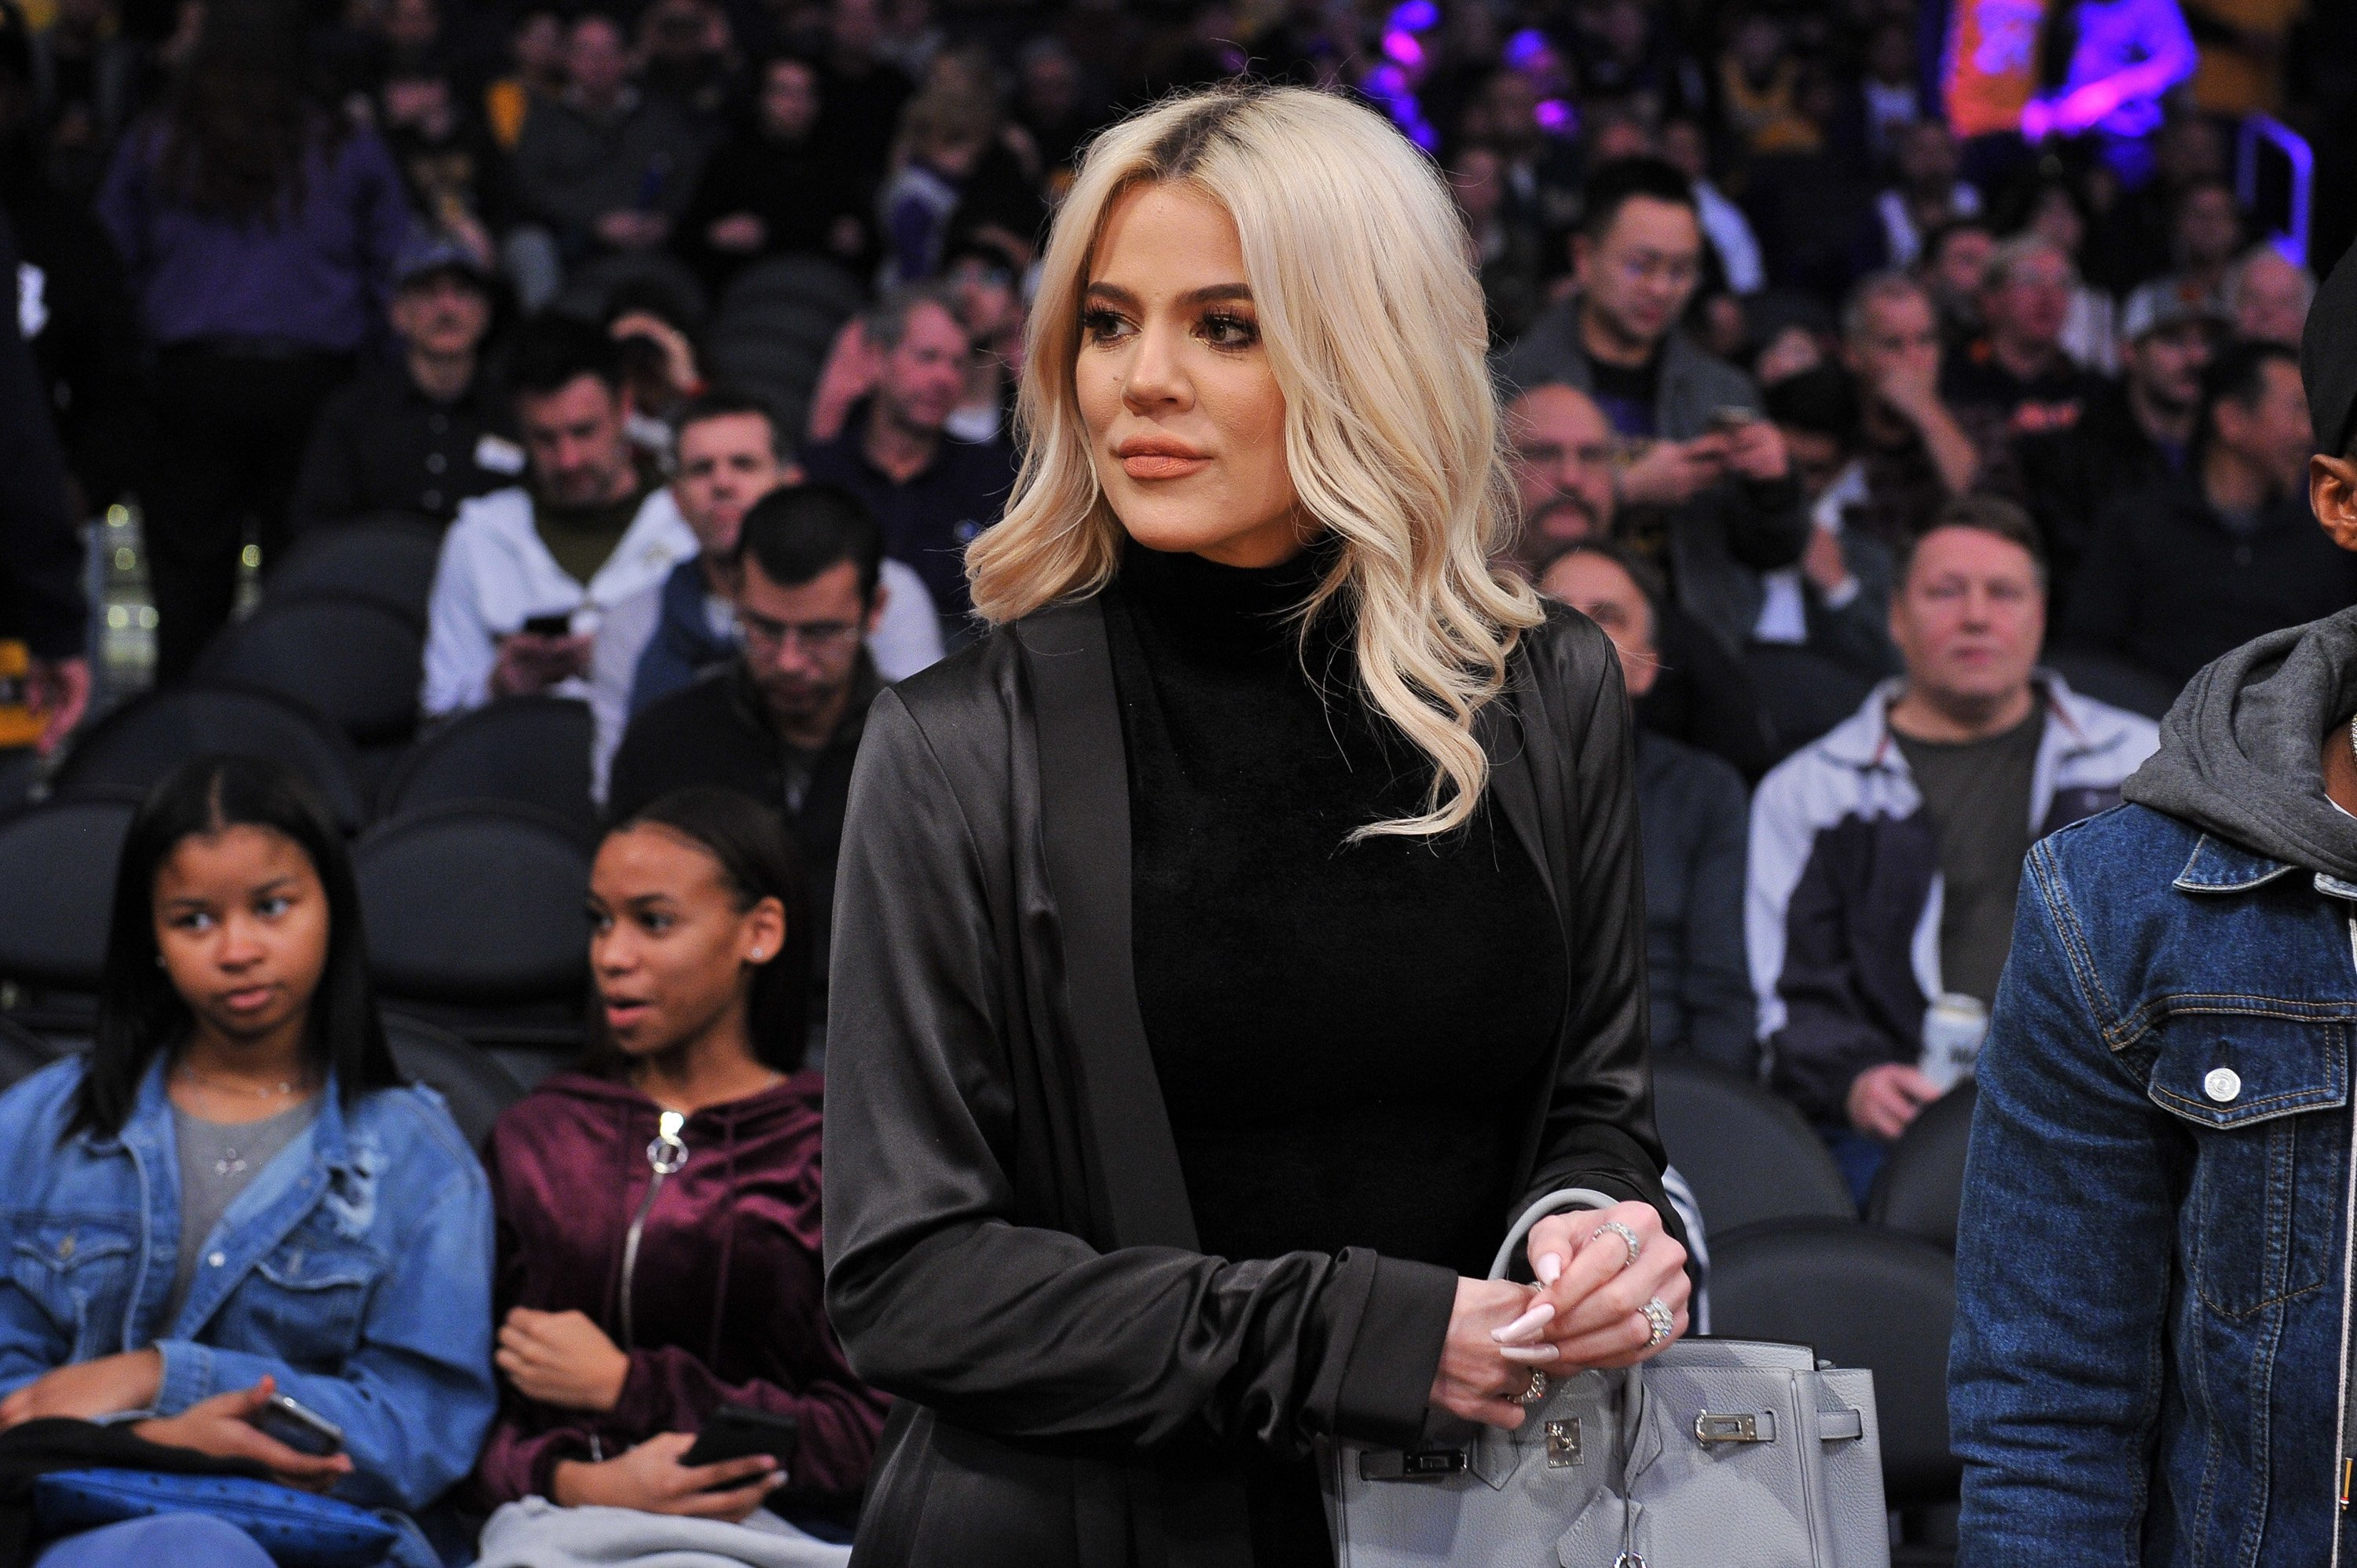 Khloe Kardashian at Staples Center on January 13, 2019. | Photo: GettyImages